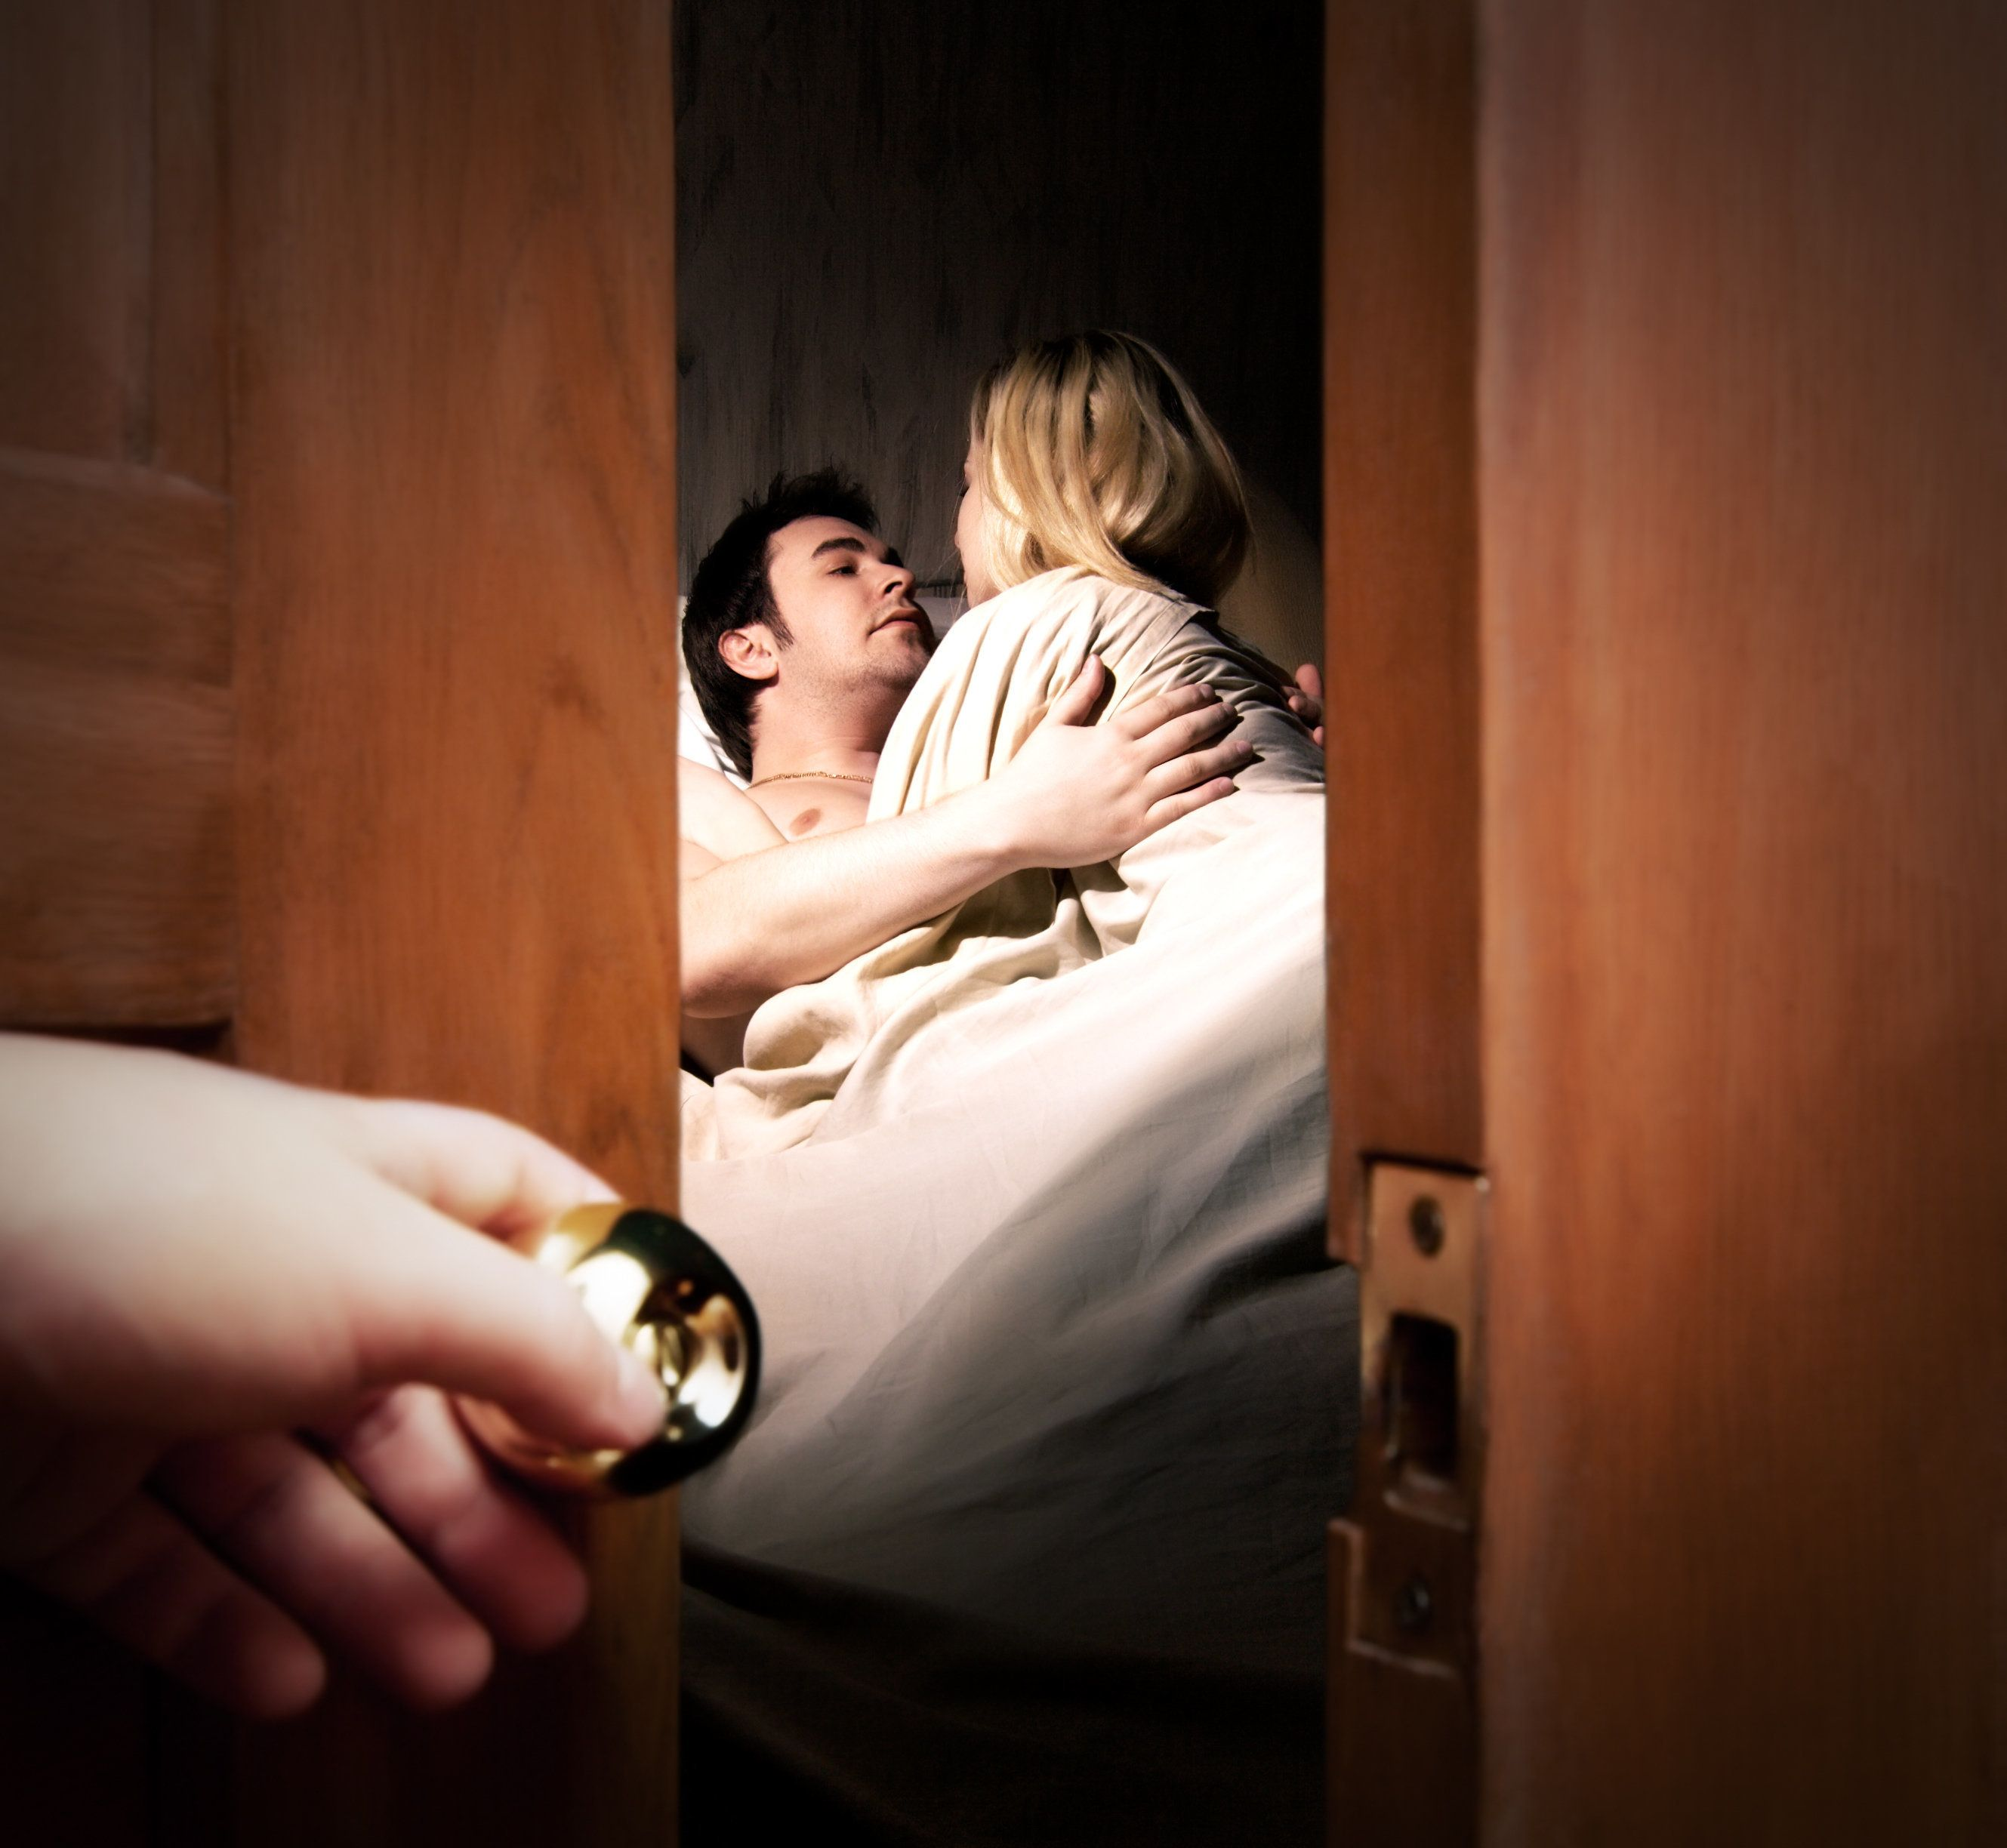 Couple lying in bed while someone is watching in front of the door